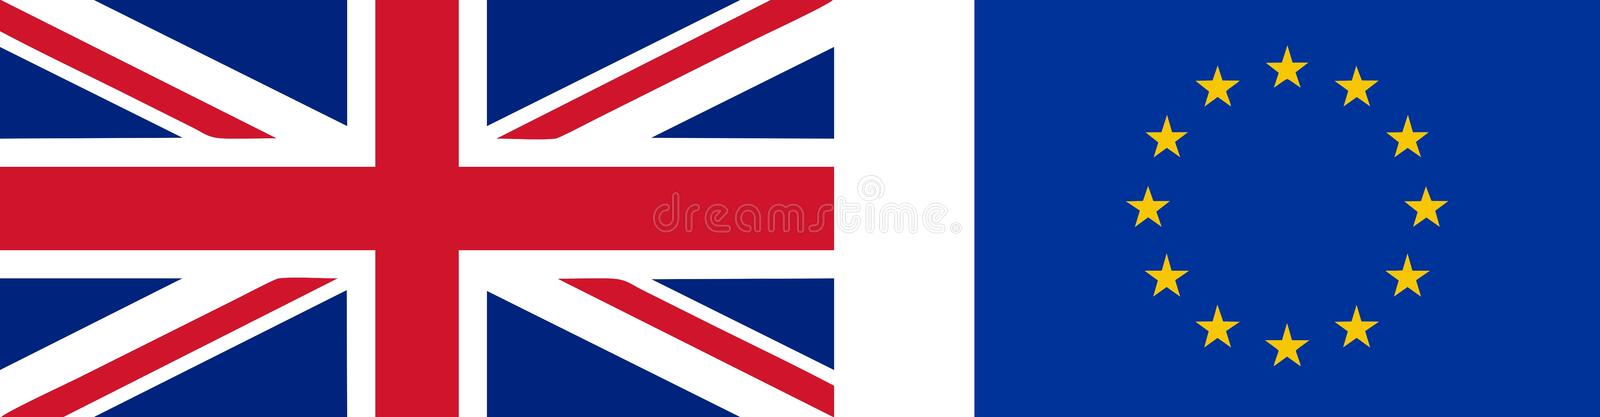 Flag of the UK and EU stock illustration